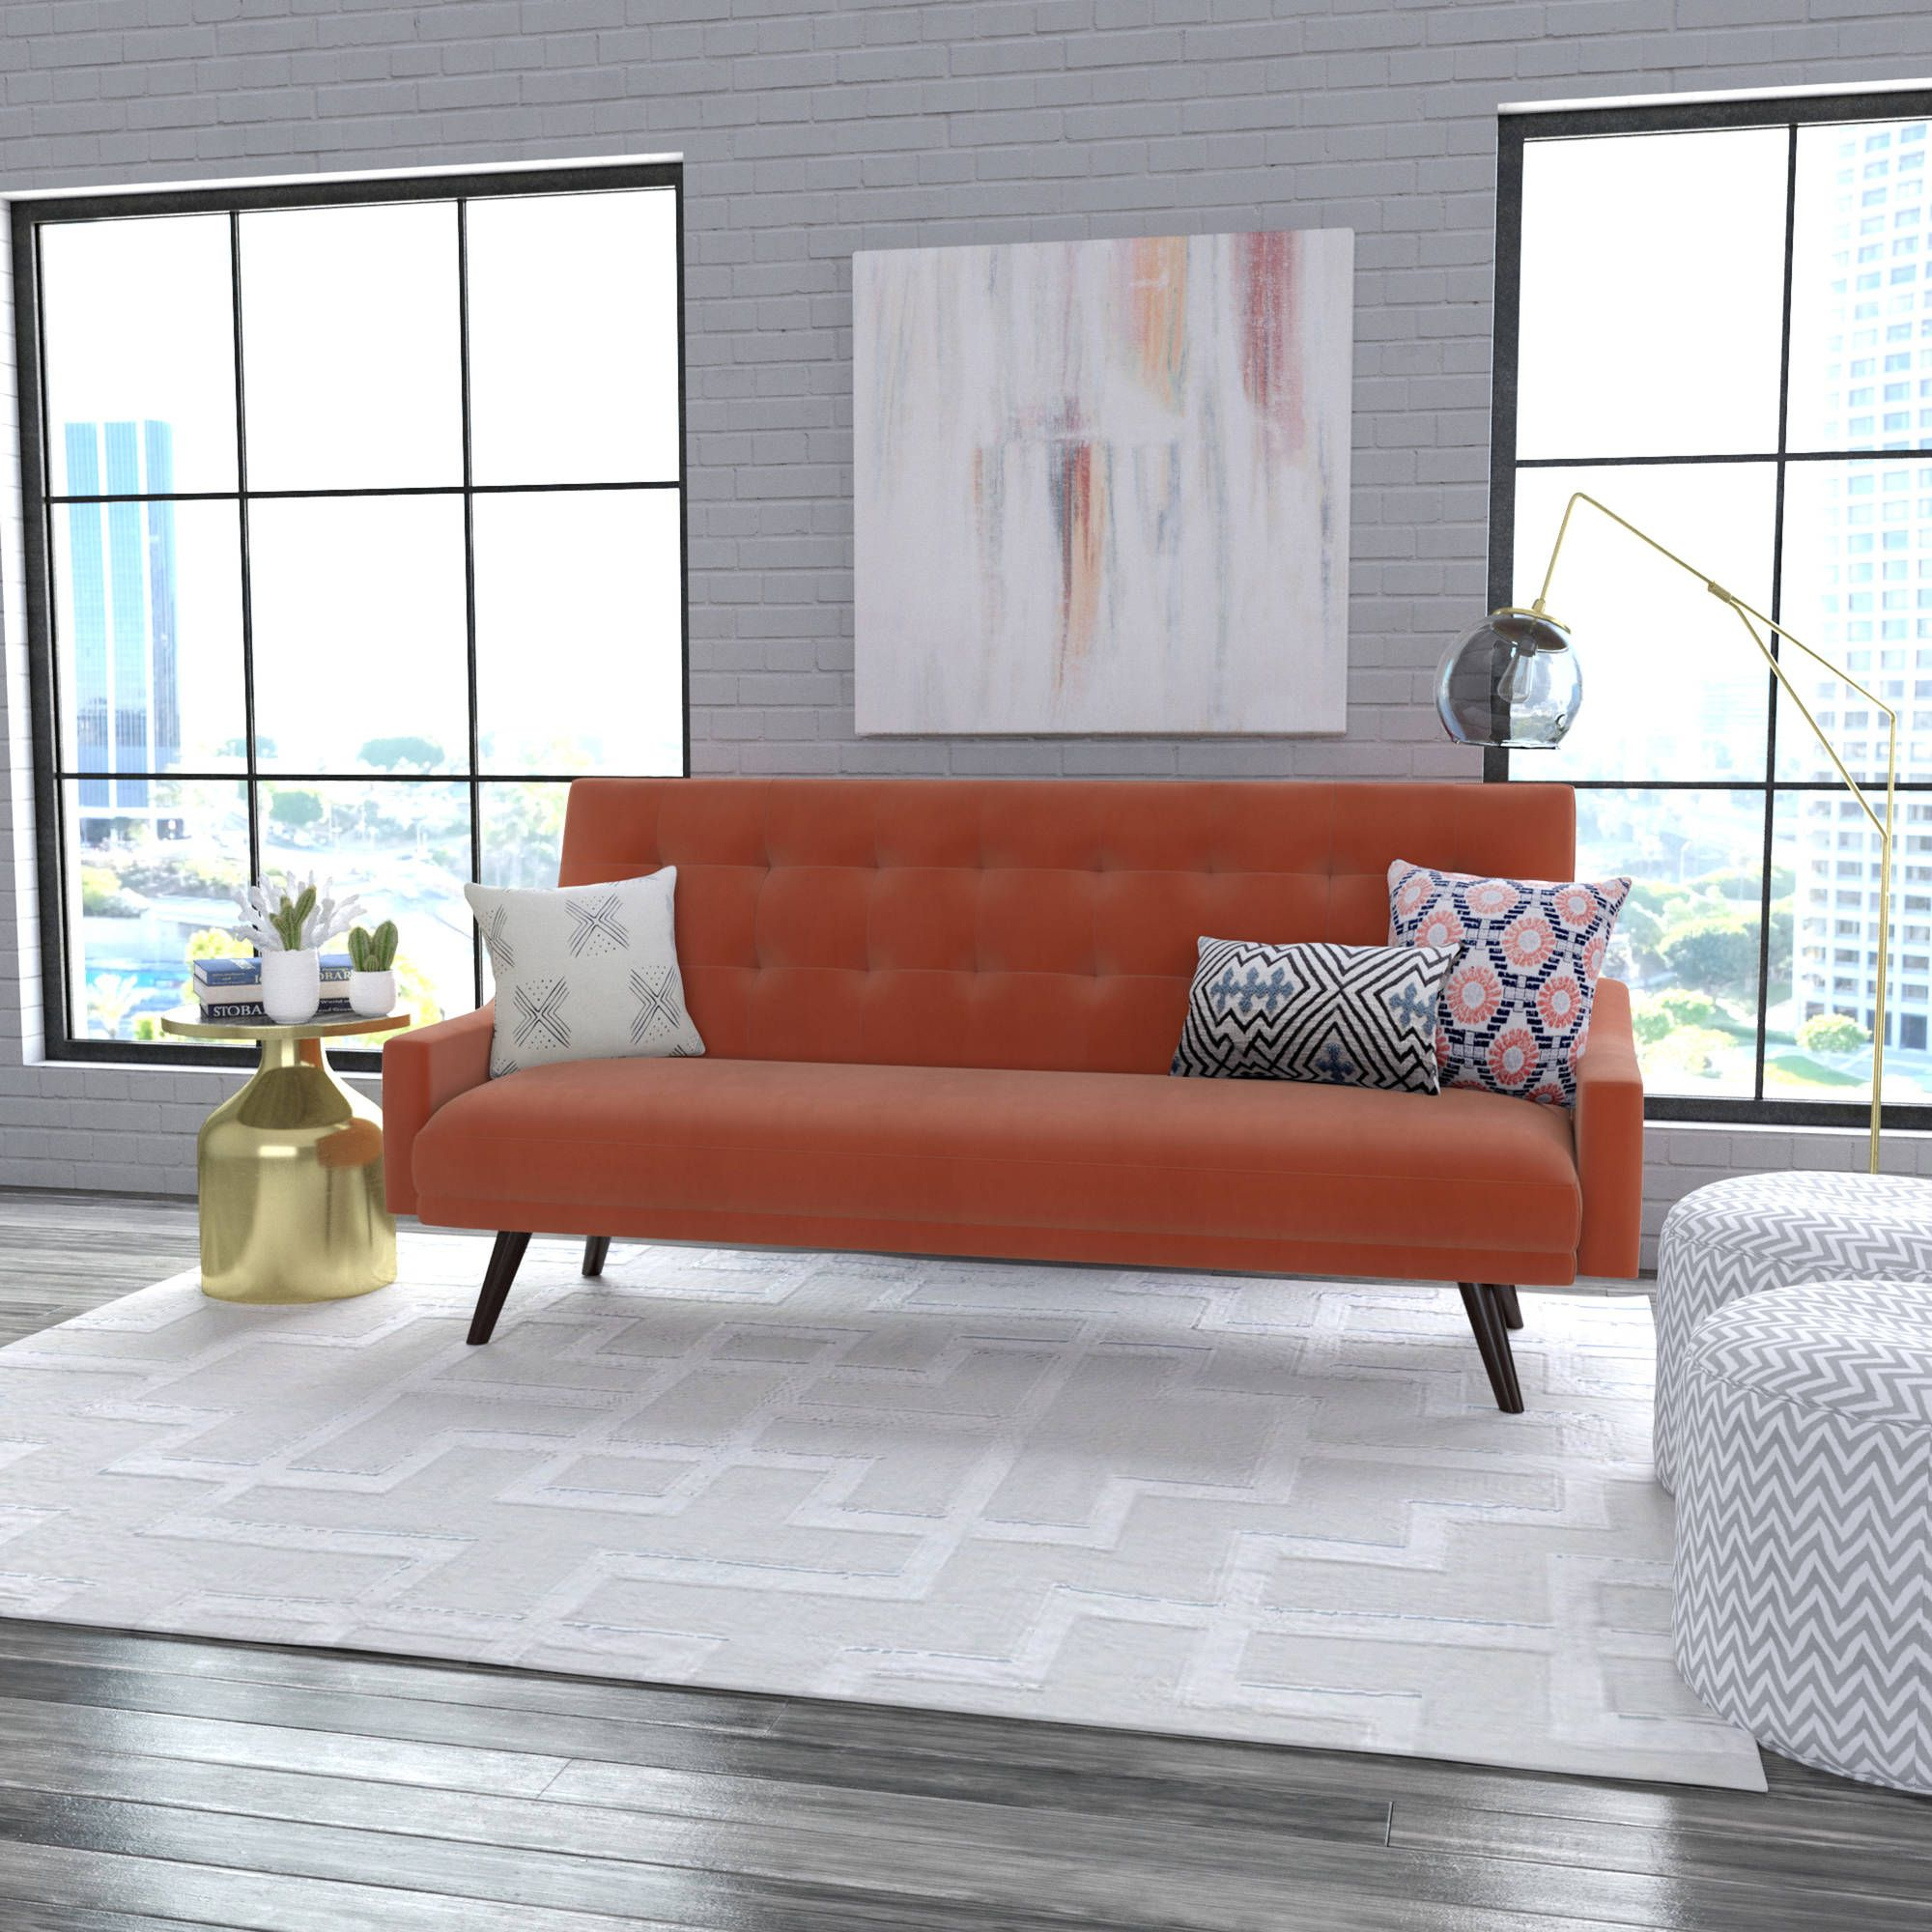 Incredible Buy Oakland Futon Sofa Bed Multiple Colors At Walmart Com Bralicious Painted Fabric Chair Ideas Braliciousco